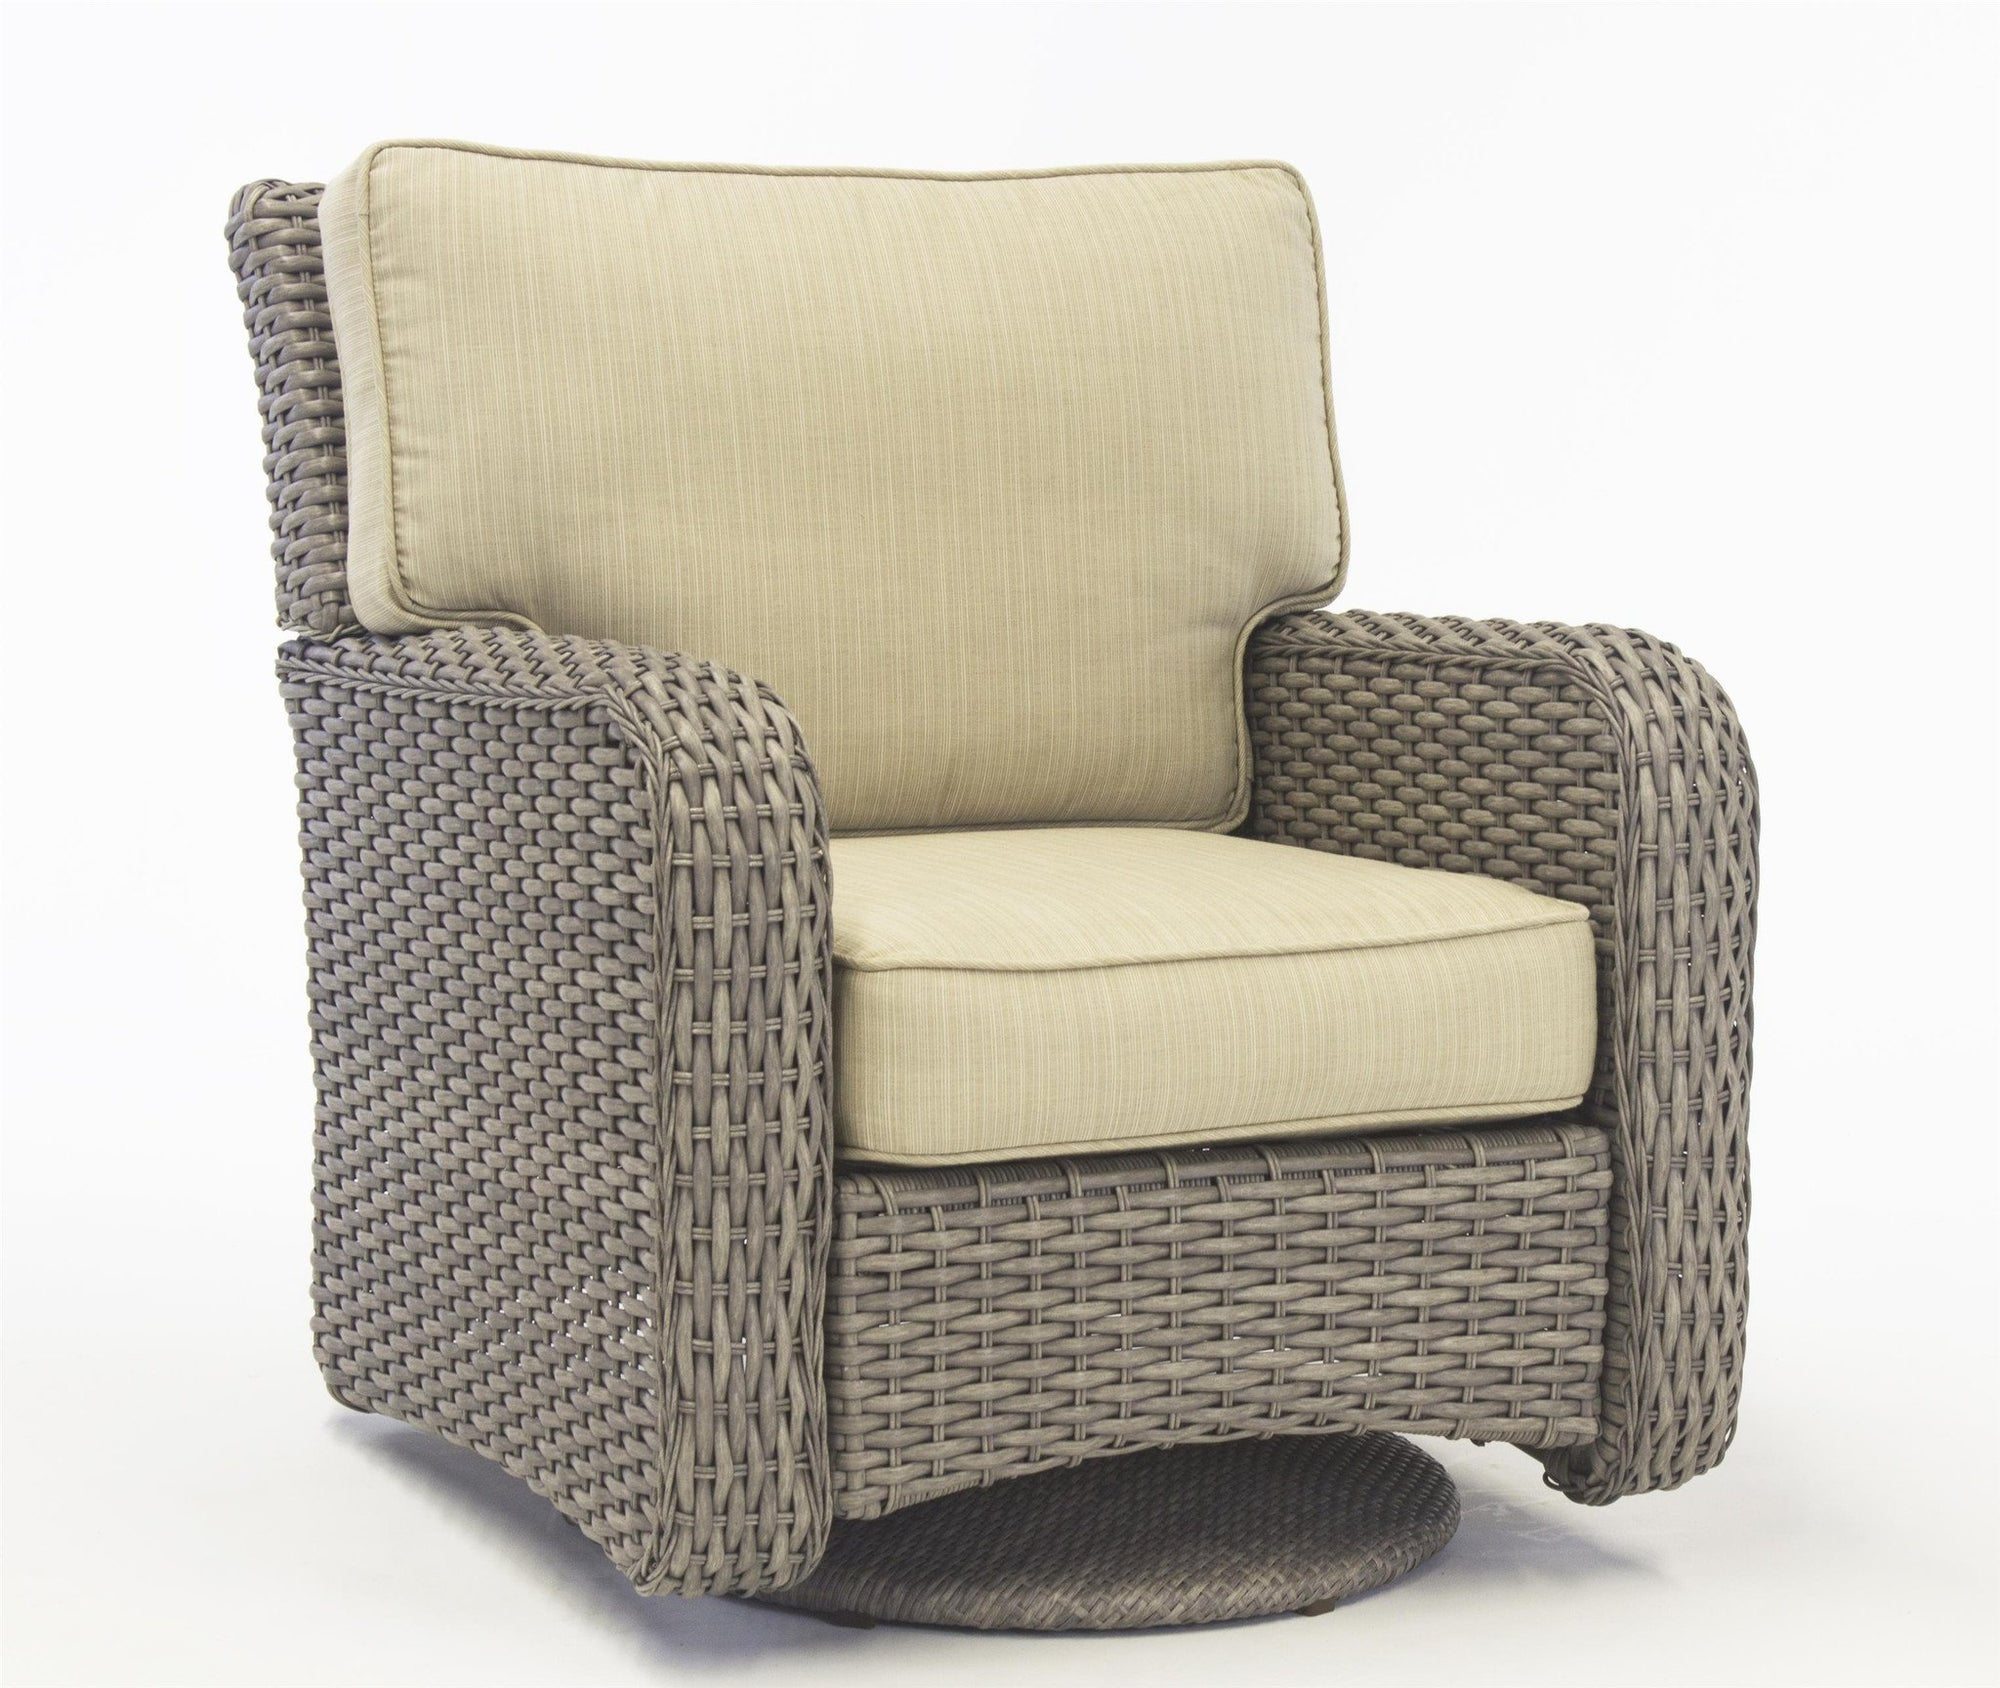 South Sea Rattan South Sea Rattan St. Tropez Swivel Glider Swivel Glider Chair - Rattan Imports